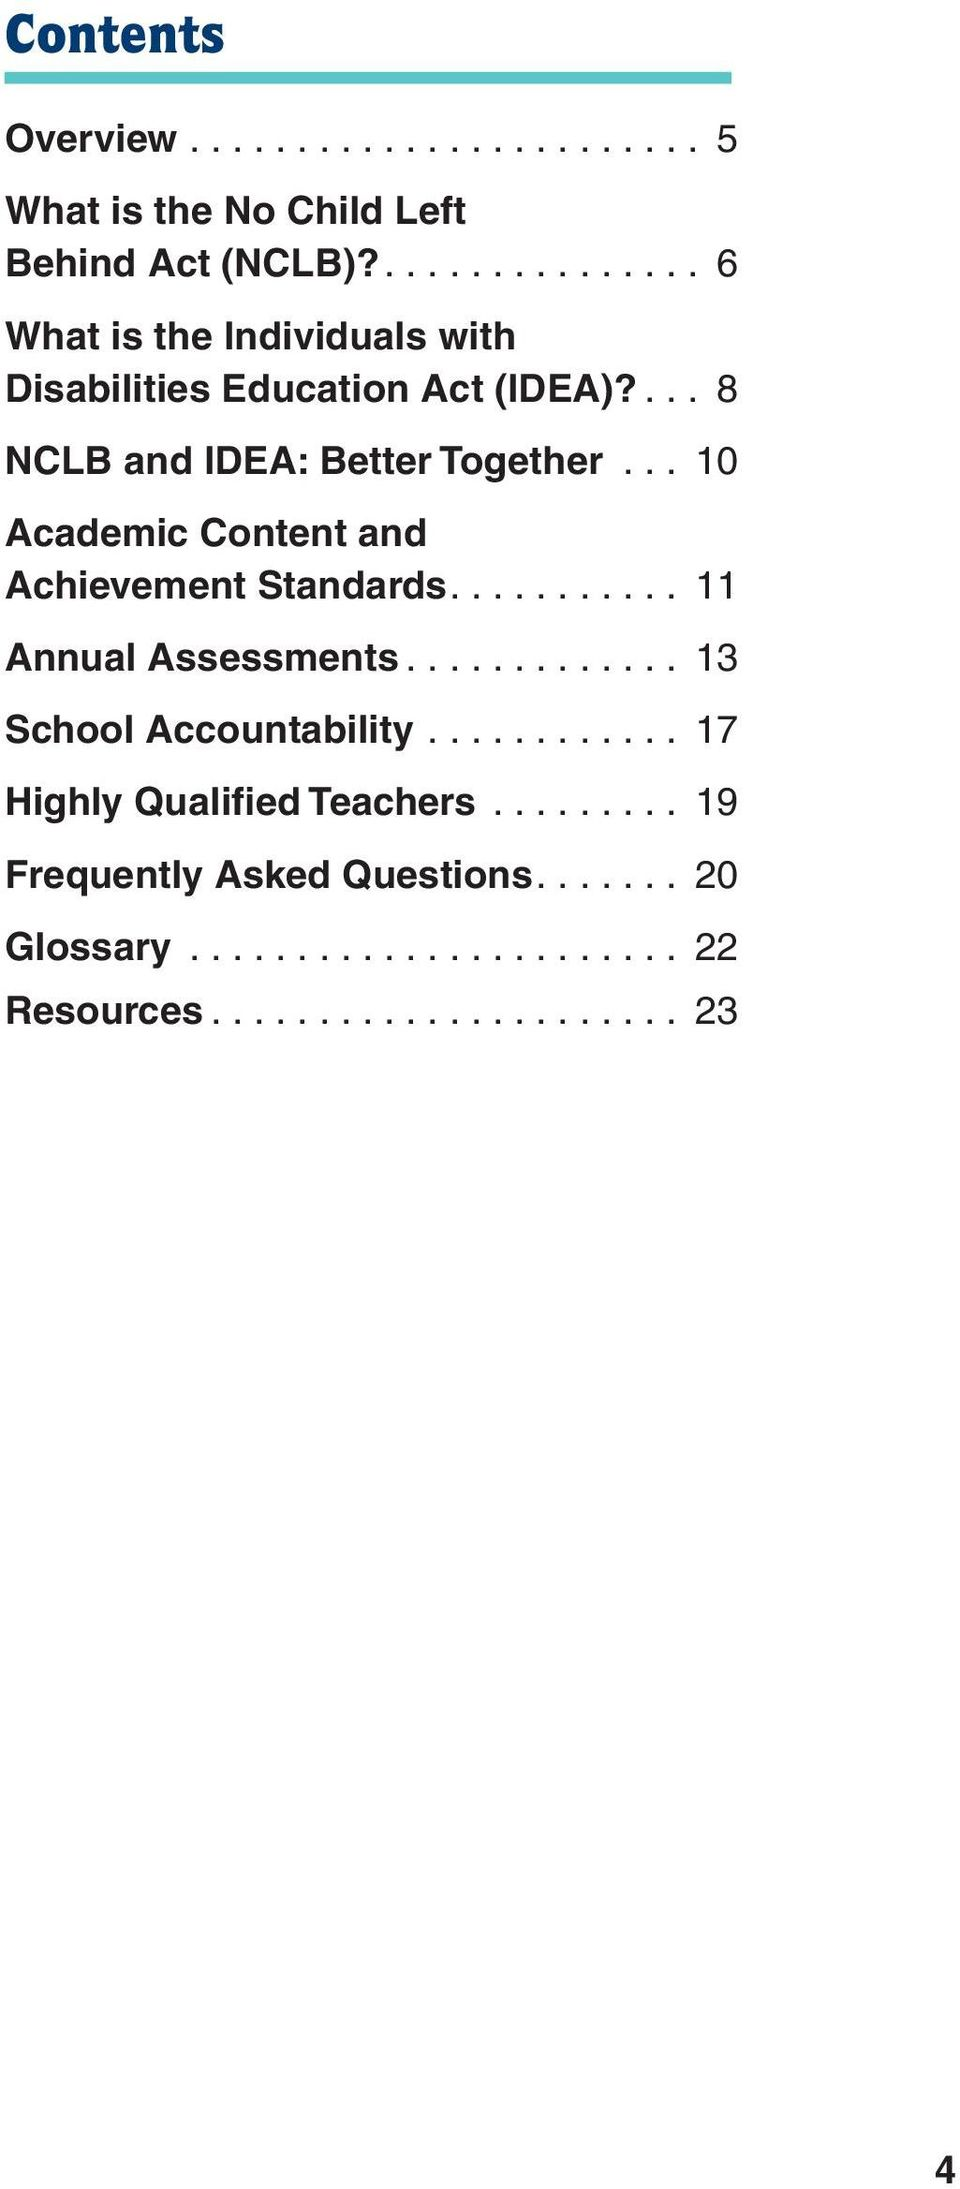 .. 10 Academic Content and Achievement Standards........... 11 Annual Assessments............. 13 School Accountability.